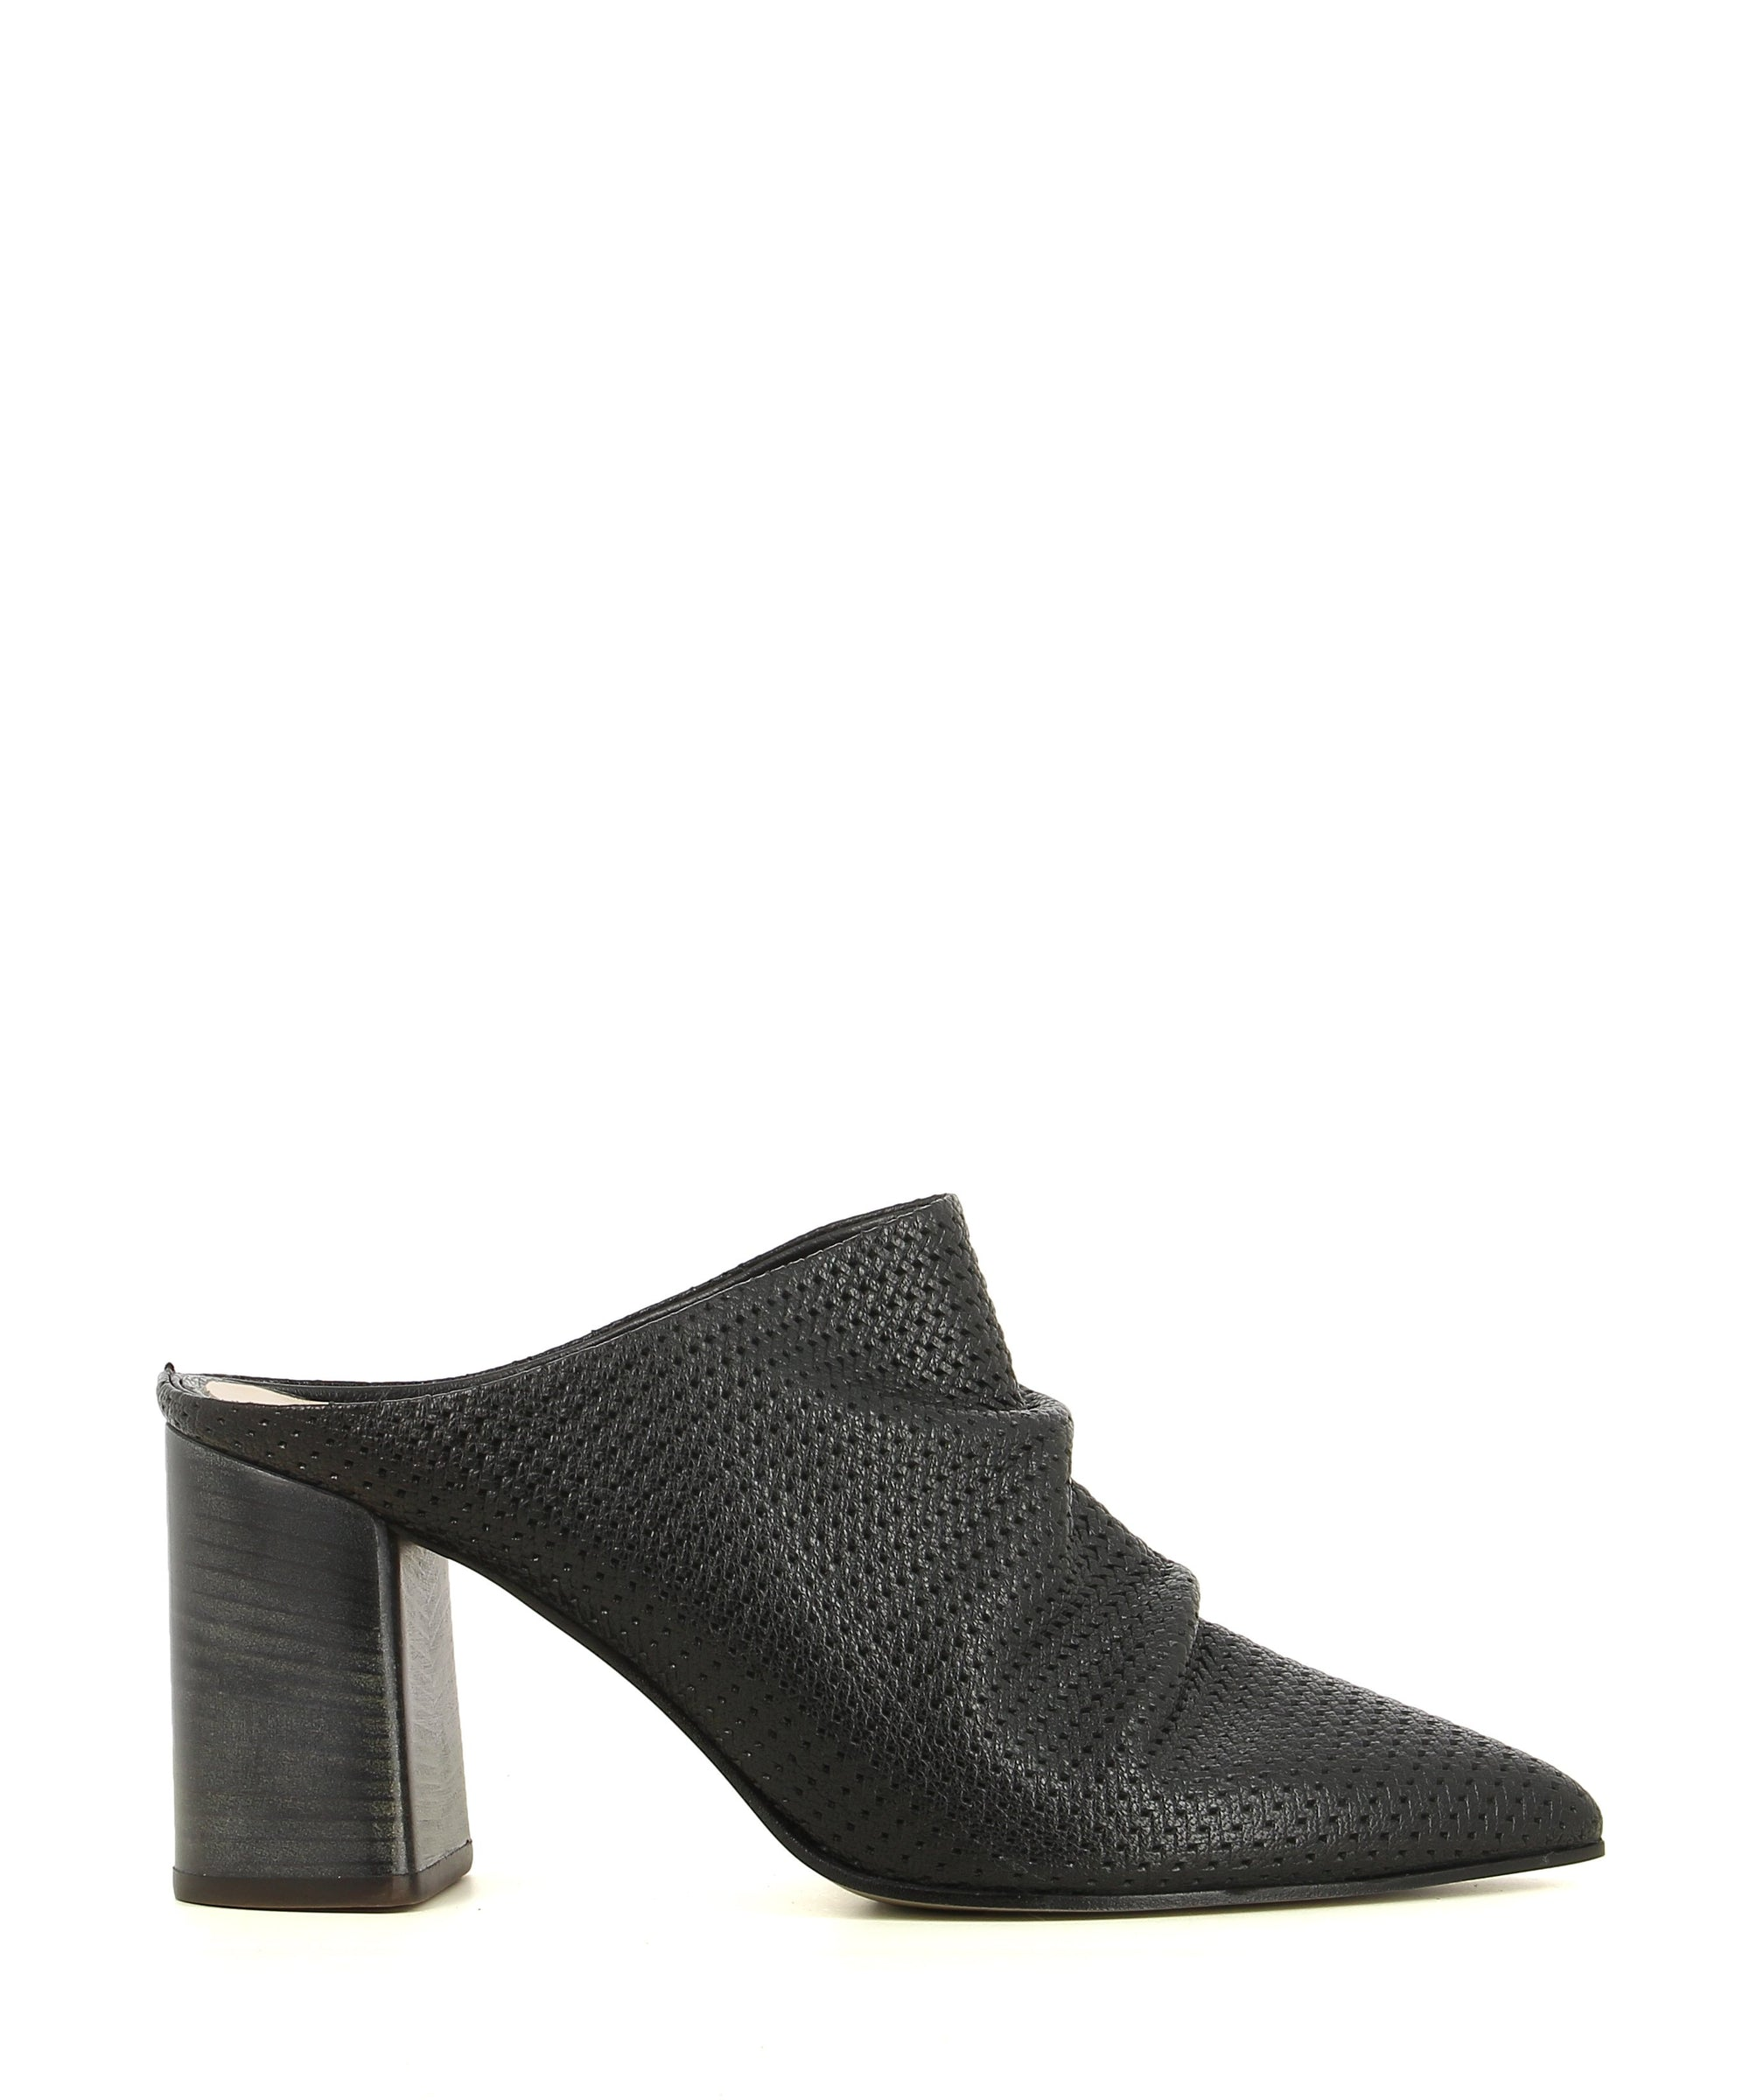 A black leather mule by Sempre Di. The '6574' features a slouched upper, a block heel, and a pointed toe.